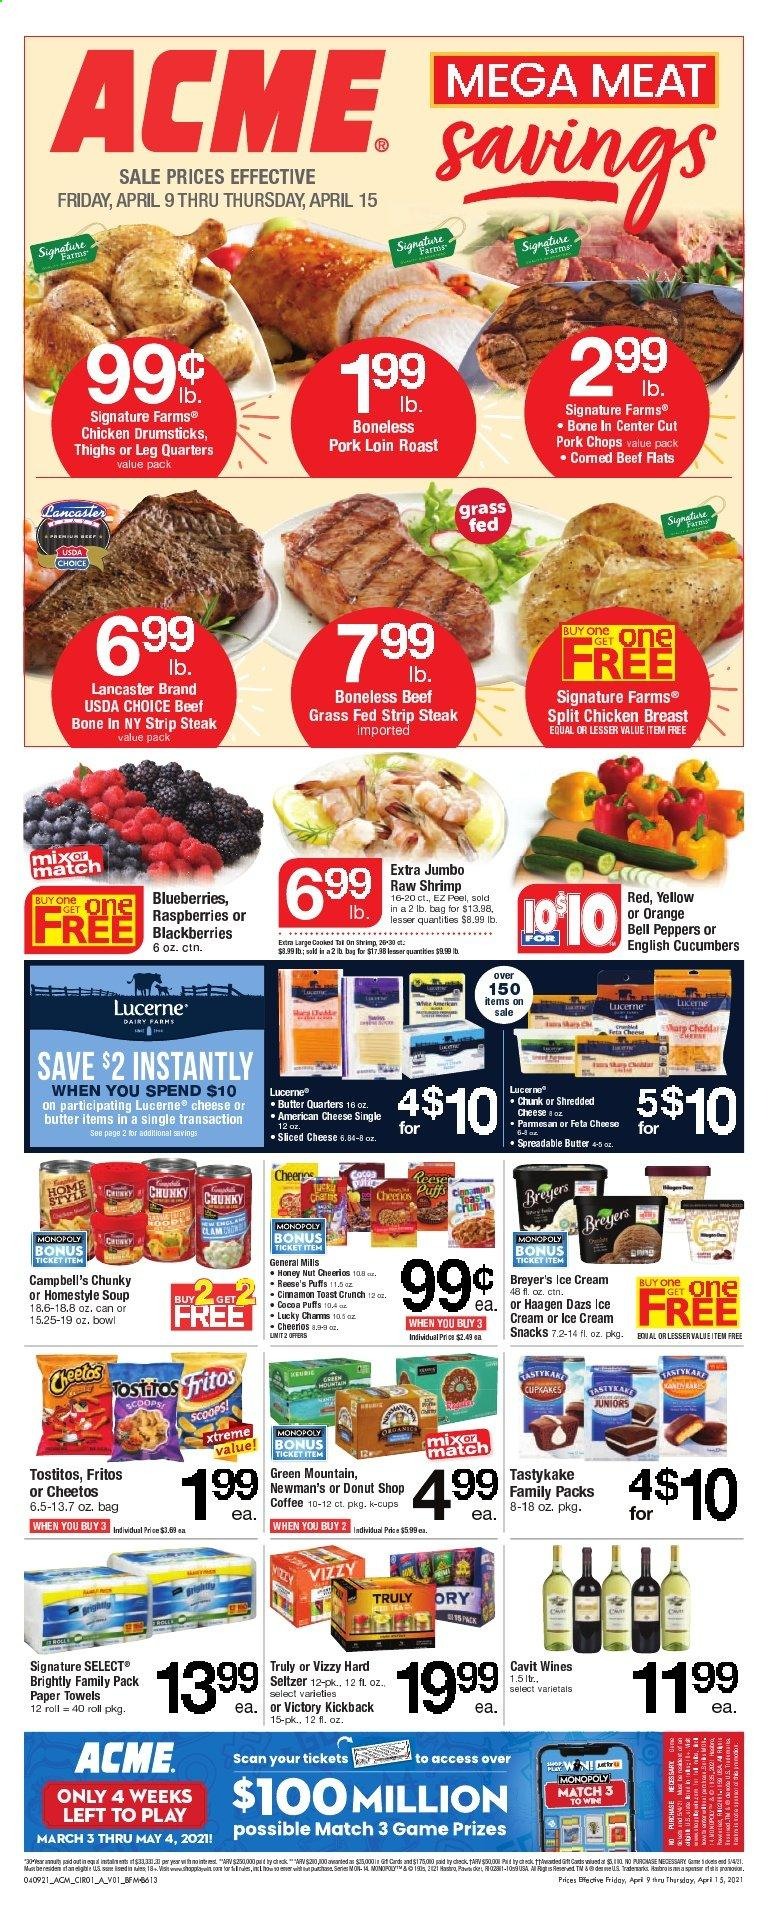 ACME Flyer - 04.09.2021 - 04.15.2021 - Sales products - Puffs, bell peppers, cucumbers, blueberries, raspberries, orange, shrimps, Campbell's, soup, american cheese, shredded cheese, sliced cheese, feta cheese, butter, spreadable butter, ice cream, Reese's, Häagen-Dazs, snack, Fritos, Cheetos, Tostitos, cocoa, Cheerios, seltzer water, coffee, coffee capsules, K-Cups, Green Mountain, hard seltzer, TRULY, chicken breasts, chicken drumsticks, chicken meat, beef meat, steak, striploin steak, pork chops, pork loin, pork meat, kitchen towels, paper towels, bowl, Sharp, beef bone, bag, peppers. Page 1.